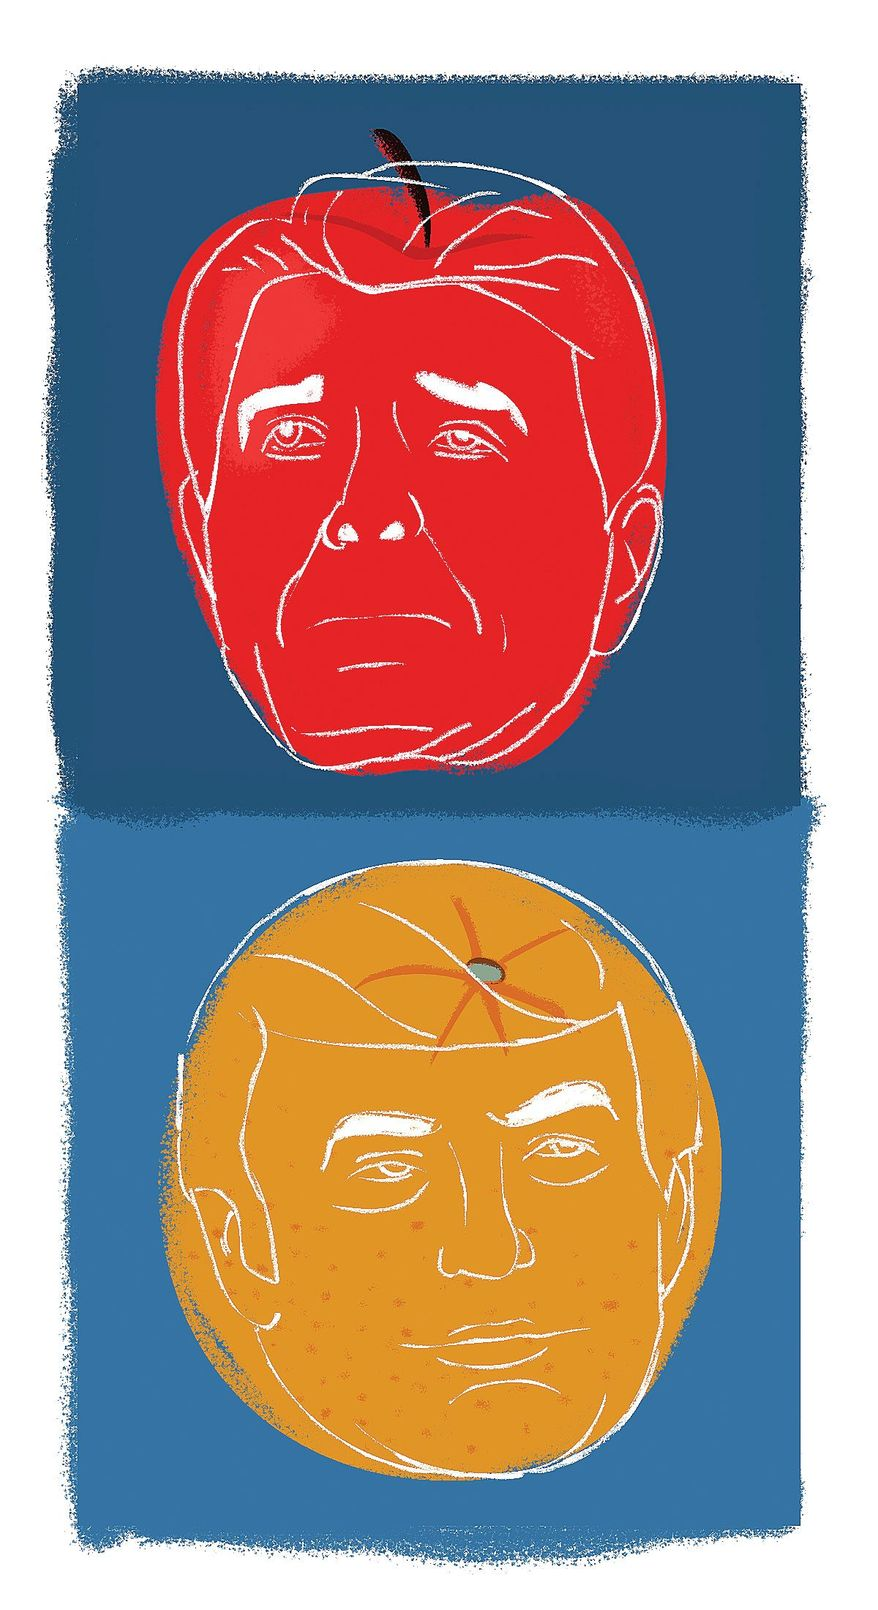 Illustration on not comparing Trump to Reagan by Linas Garsys/The Washington Times